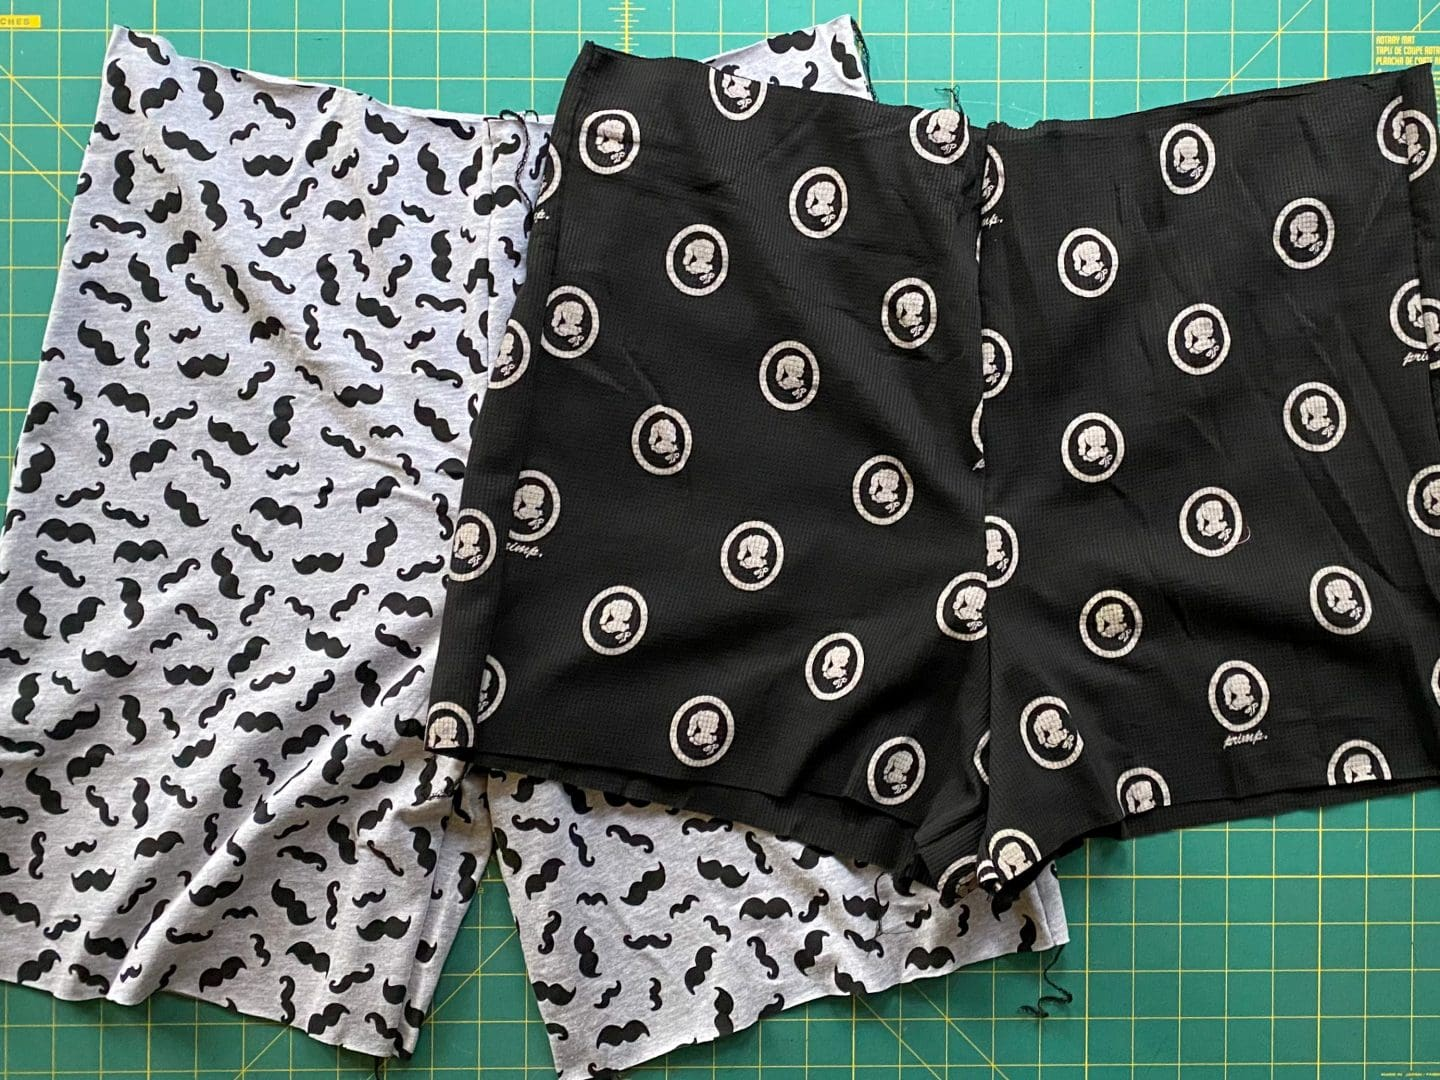 Image of two pairs of shorts, one gray with black mustaches, one black with white cameos, waistband and hems unfinished, on a green cutting board